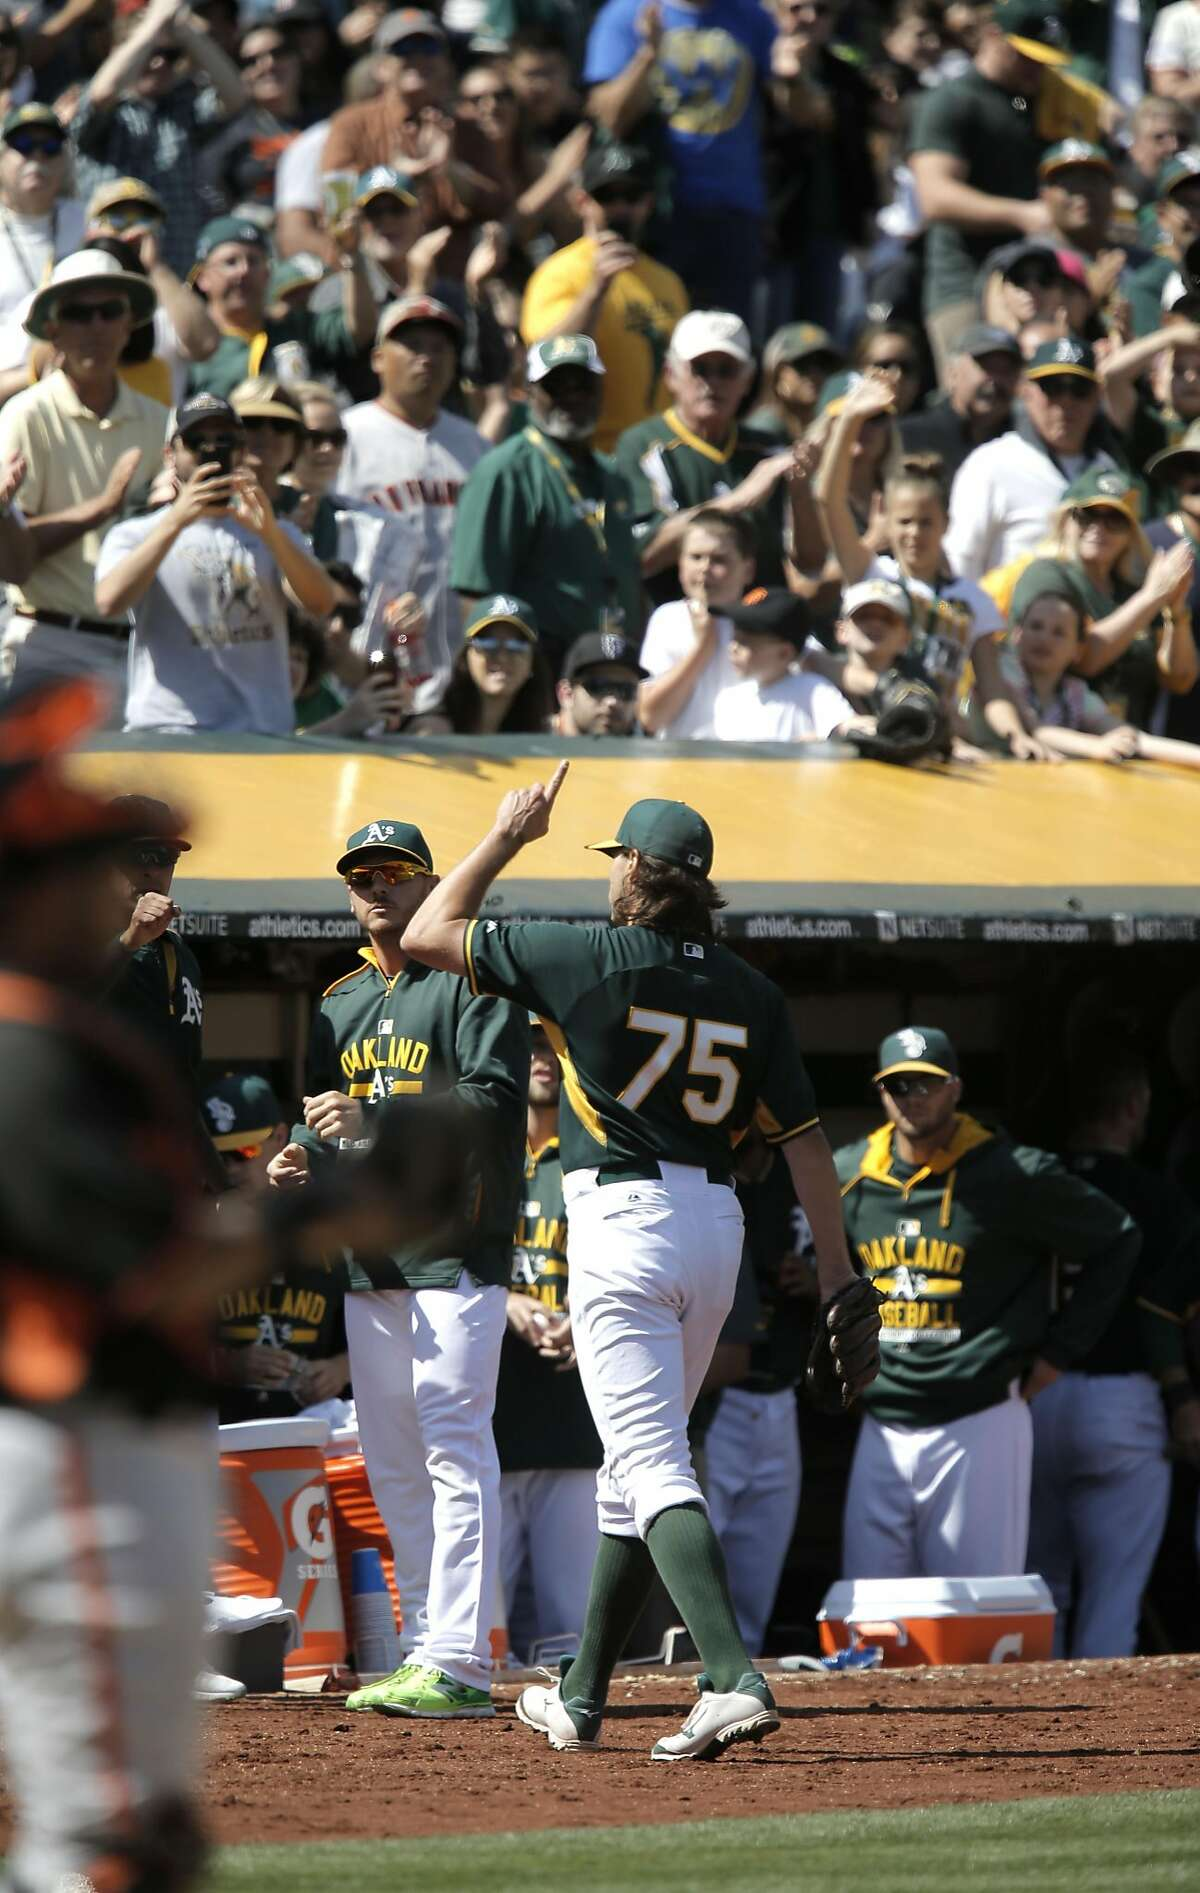 A's pitcher Barry Zito, leaves in the 6th inning to a standing ovation from the crowd, as the Oakland Athletics went on to lose to the San Francisco Giants 2-1 in game three of the Bay Bridge Series at O.co Coliseum in Oakland, Calif., as seen on Sat.. April 4, 2015.